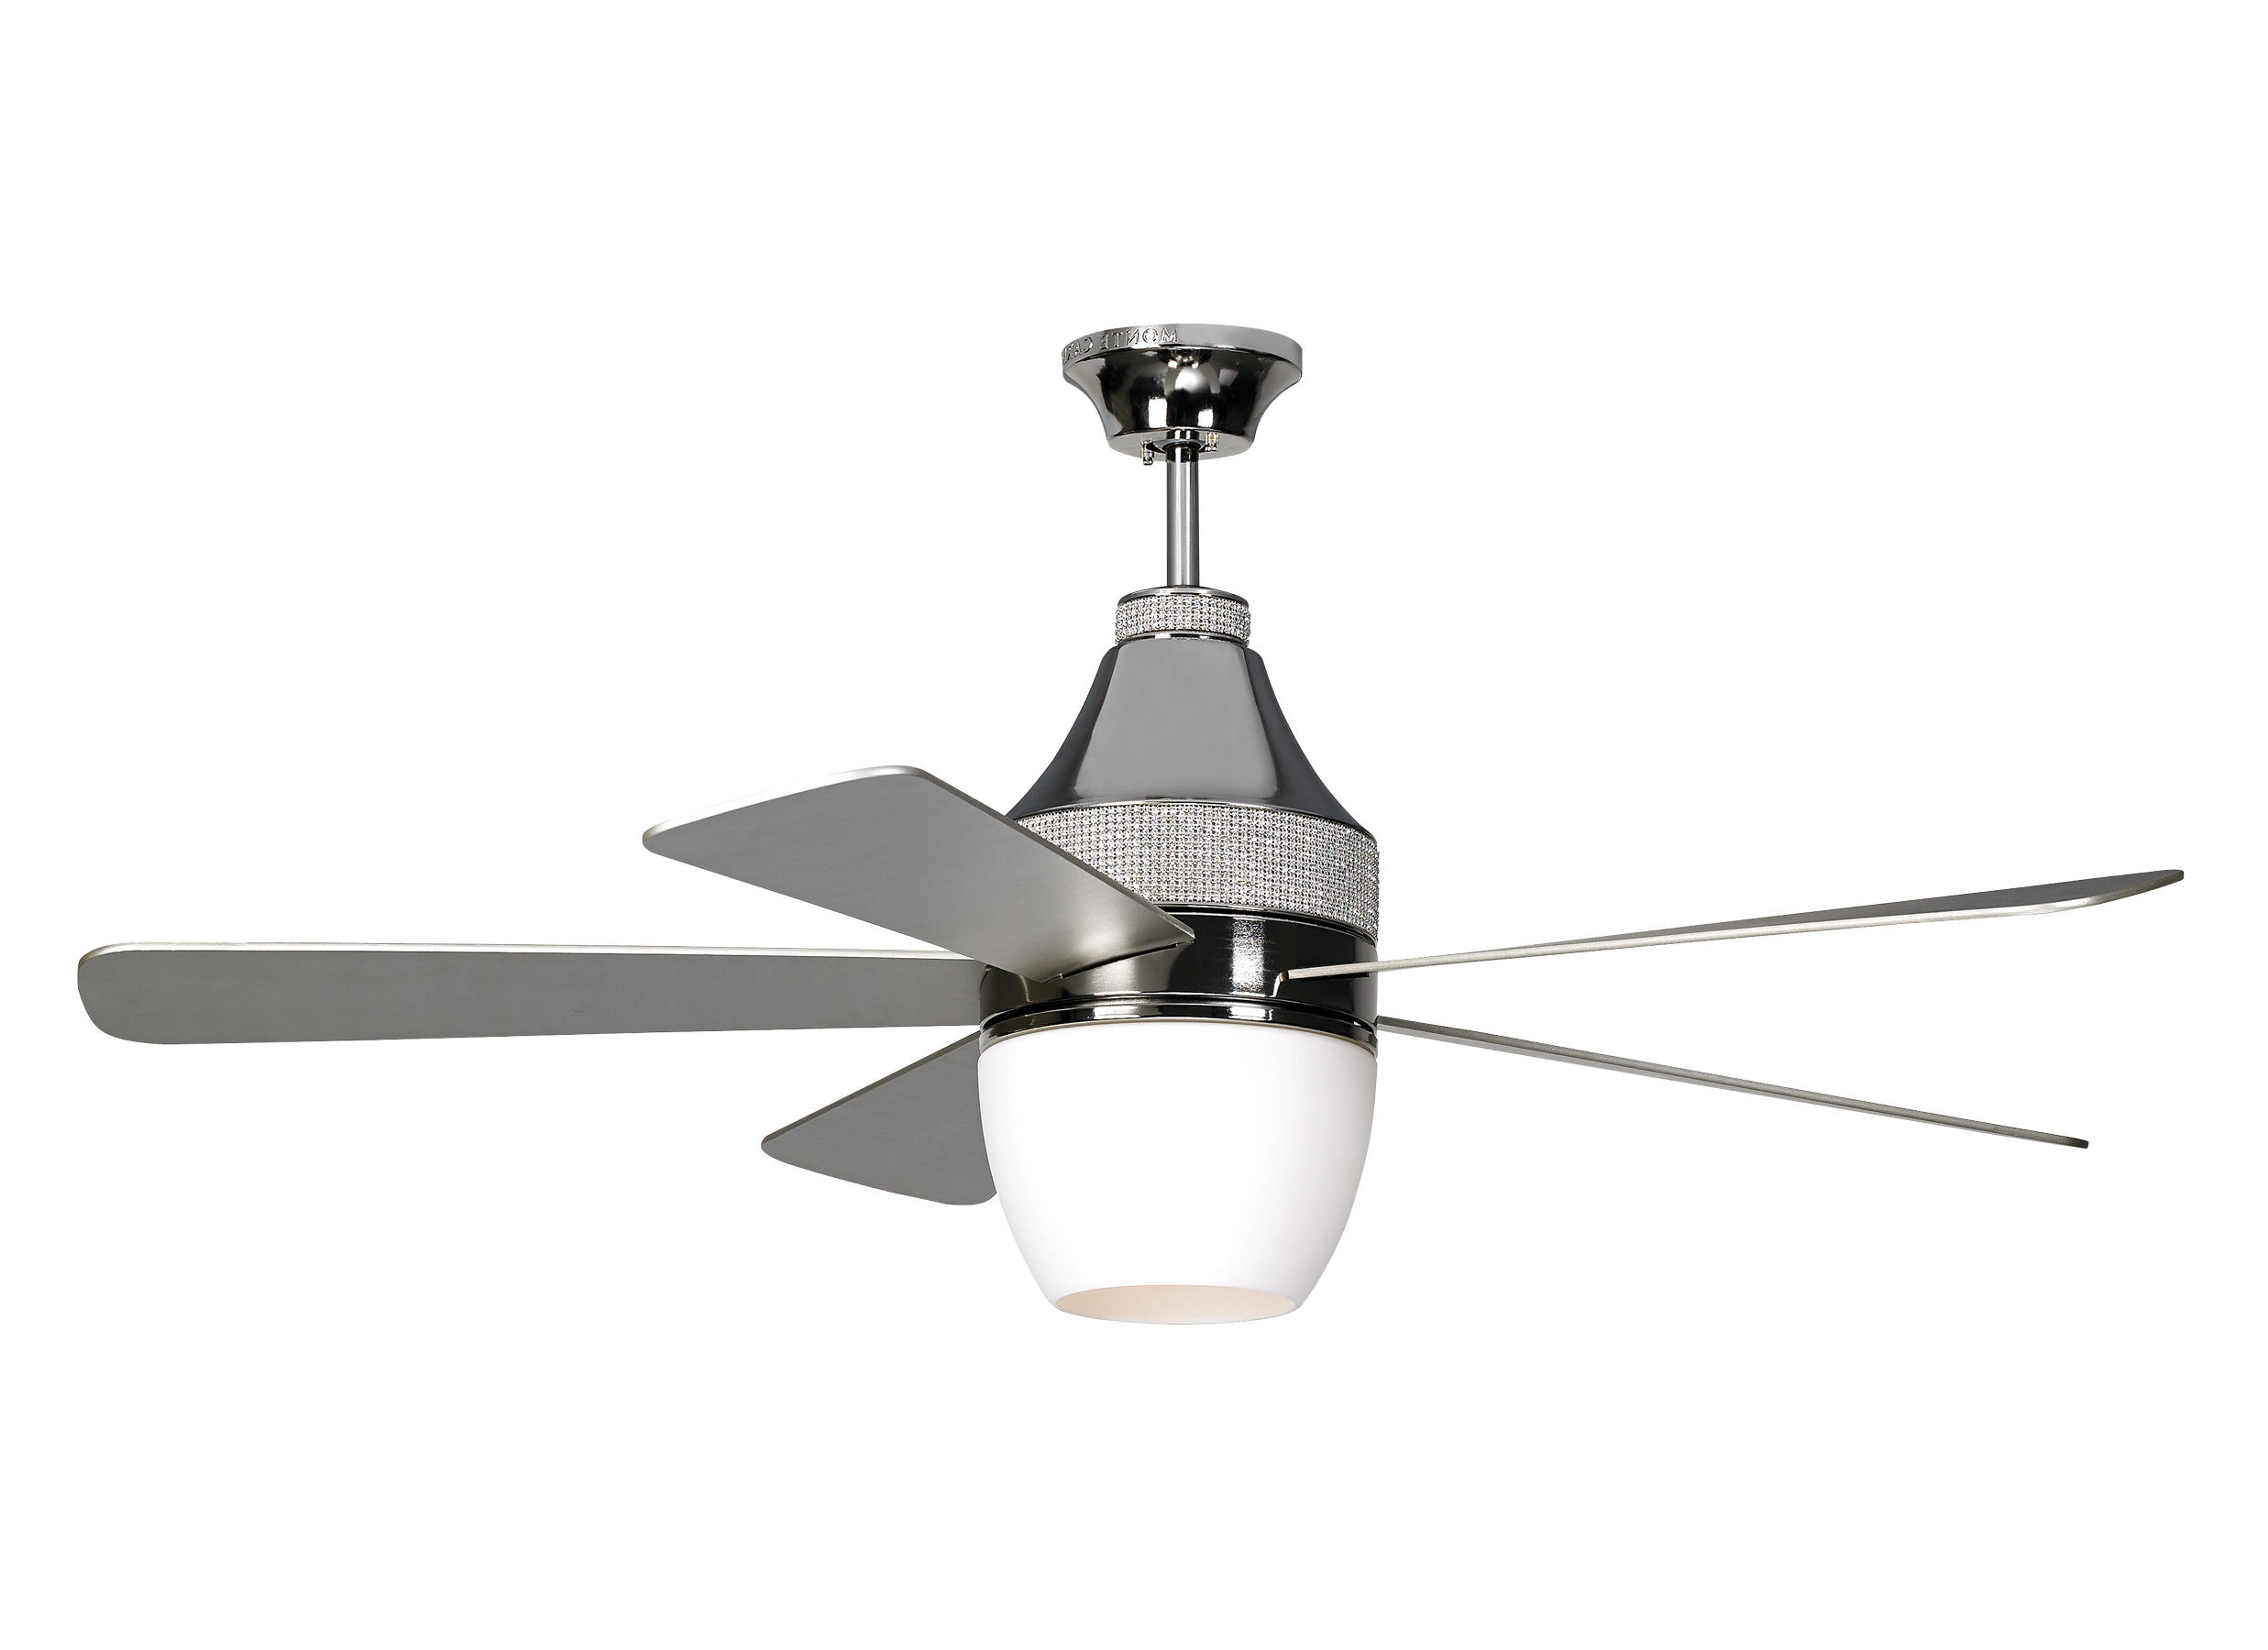 "5nkr52pnd,52"" Nikki – Polished Nickel,polished Nickel Pertaining To Preferred Nikki 3 Blade Ceiling Fans (View 3 of 20)"